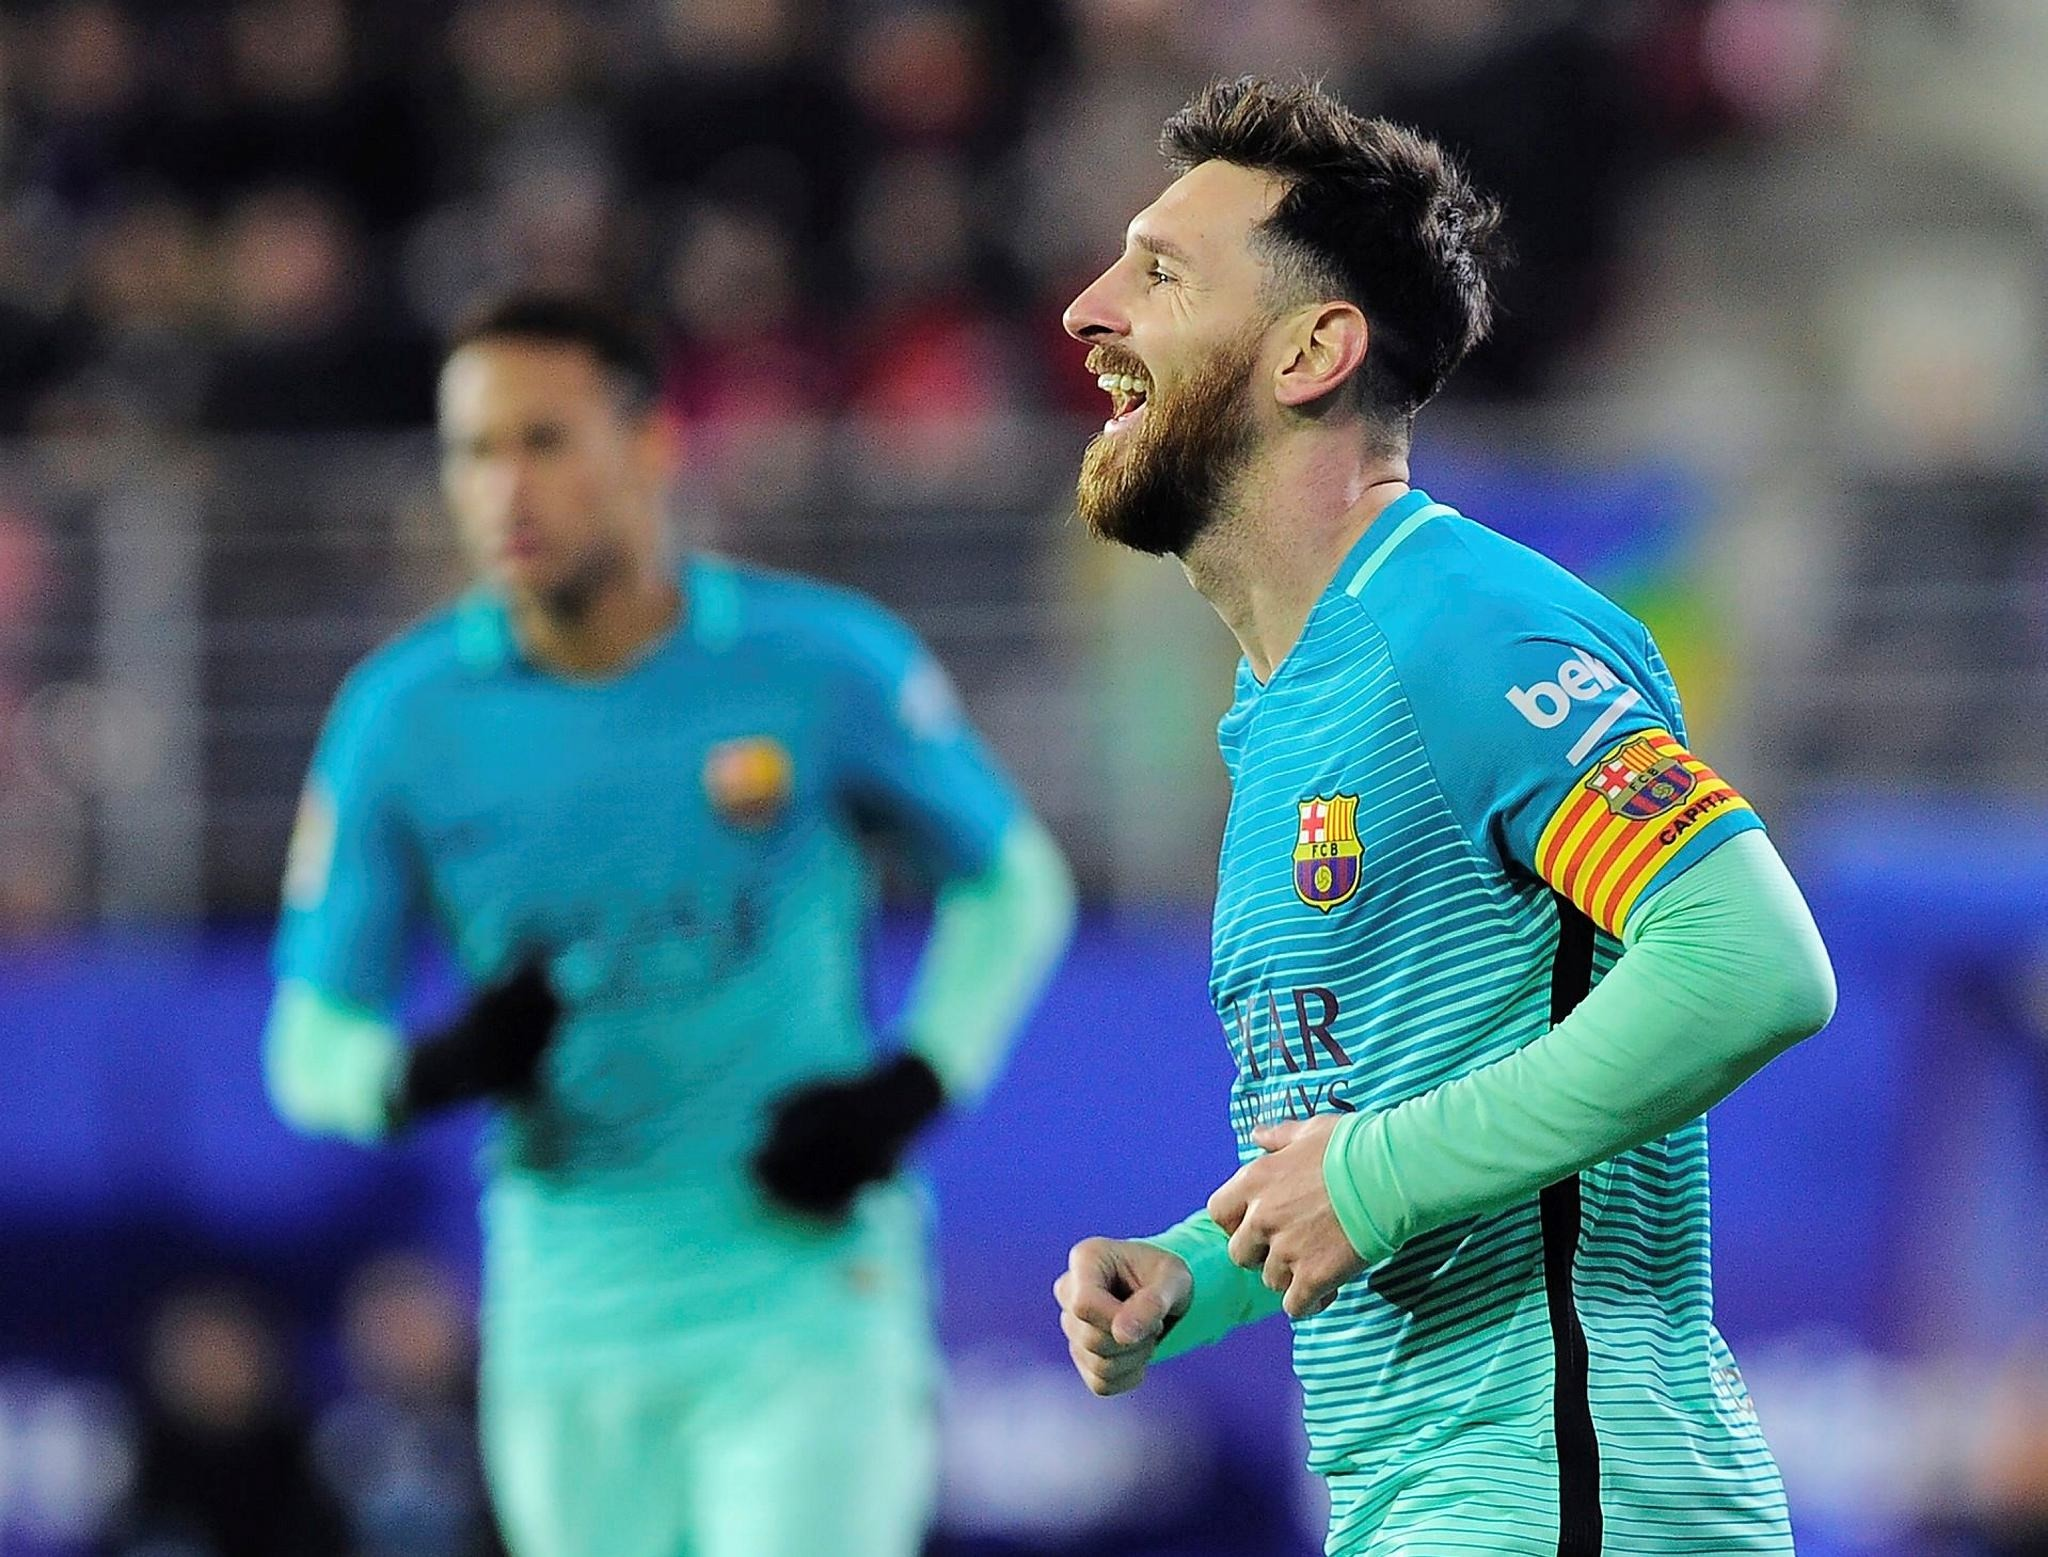 Lionel Messi celebrates after scoring his team's second goal during the Spanish league football match SD Eibar vs FC Barcelona at the Ipurua stadium in Eibar on January 22, 2017. (AFP Photo)